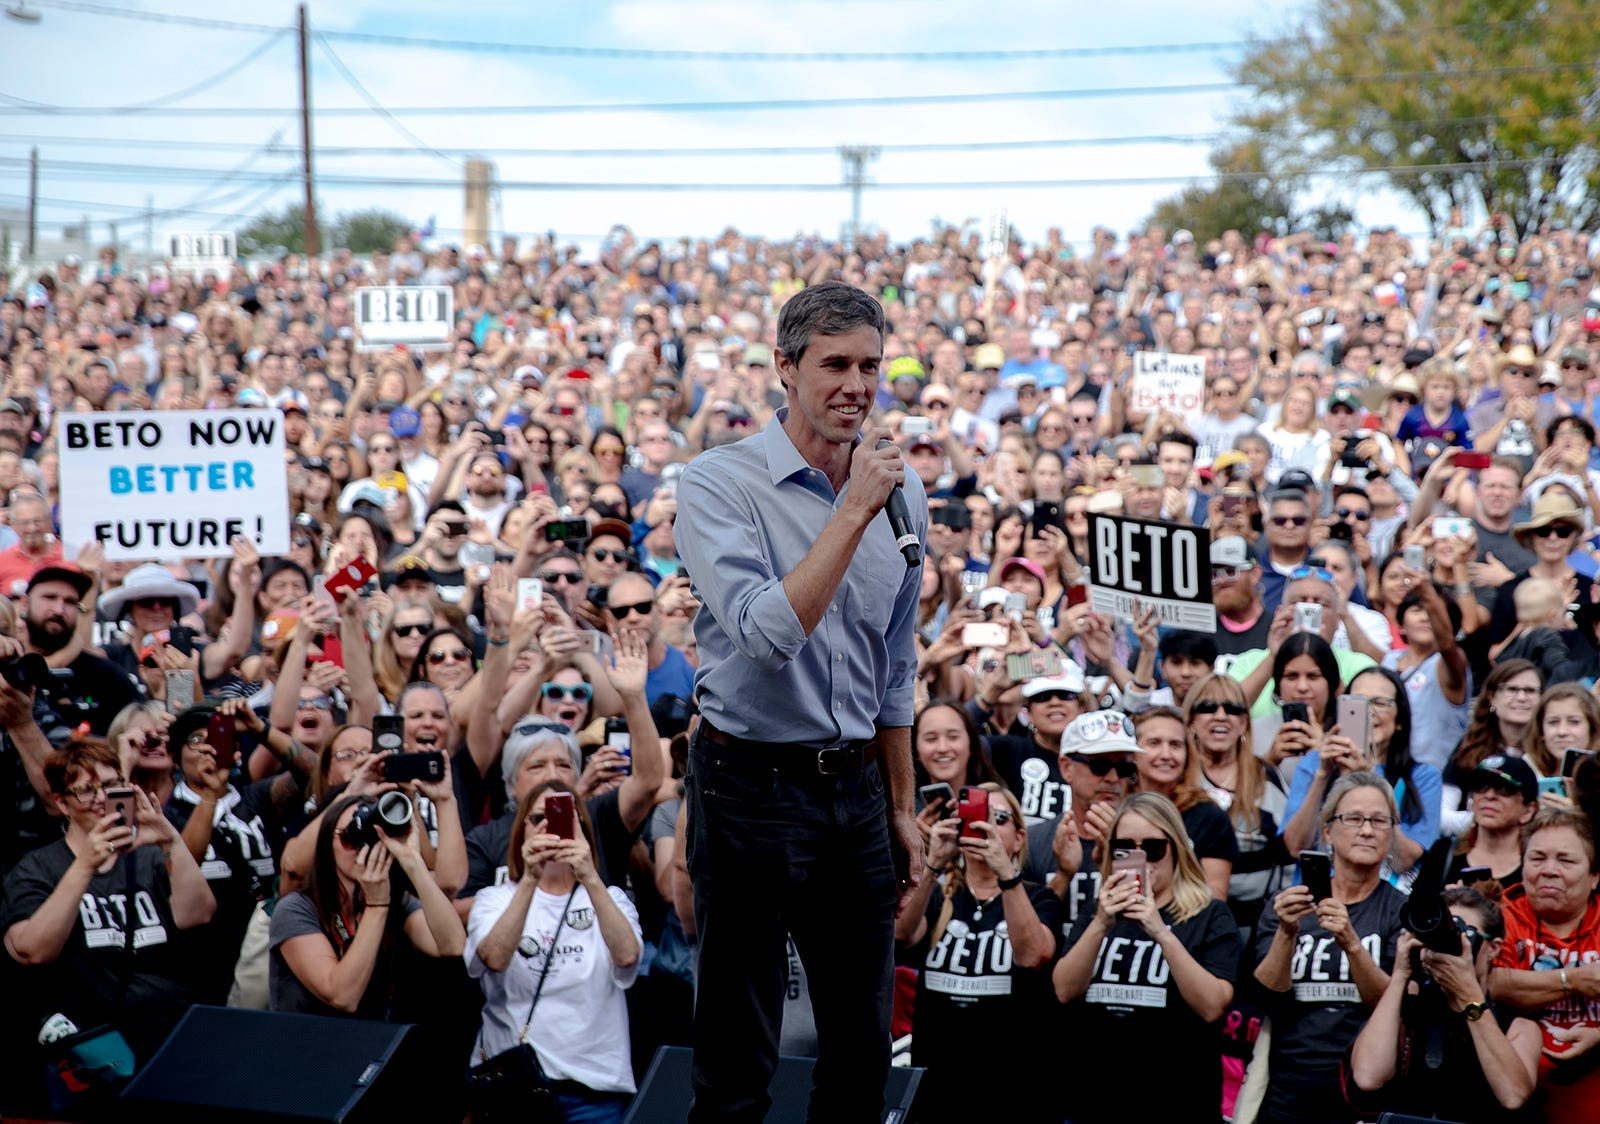 Beto O'Rourke, the 2018 Democratic candidate for U.S. Senate in Texas, gets ready to speak at the Pan American Neighborhood Park in Austin, Tex., on Sunday, Nov. 4, 2018.